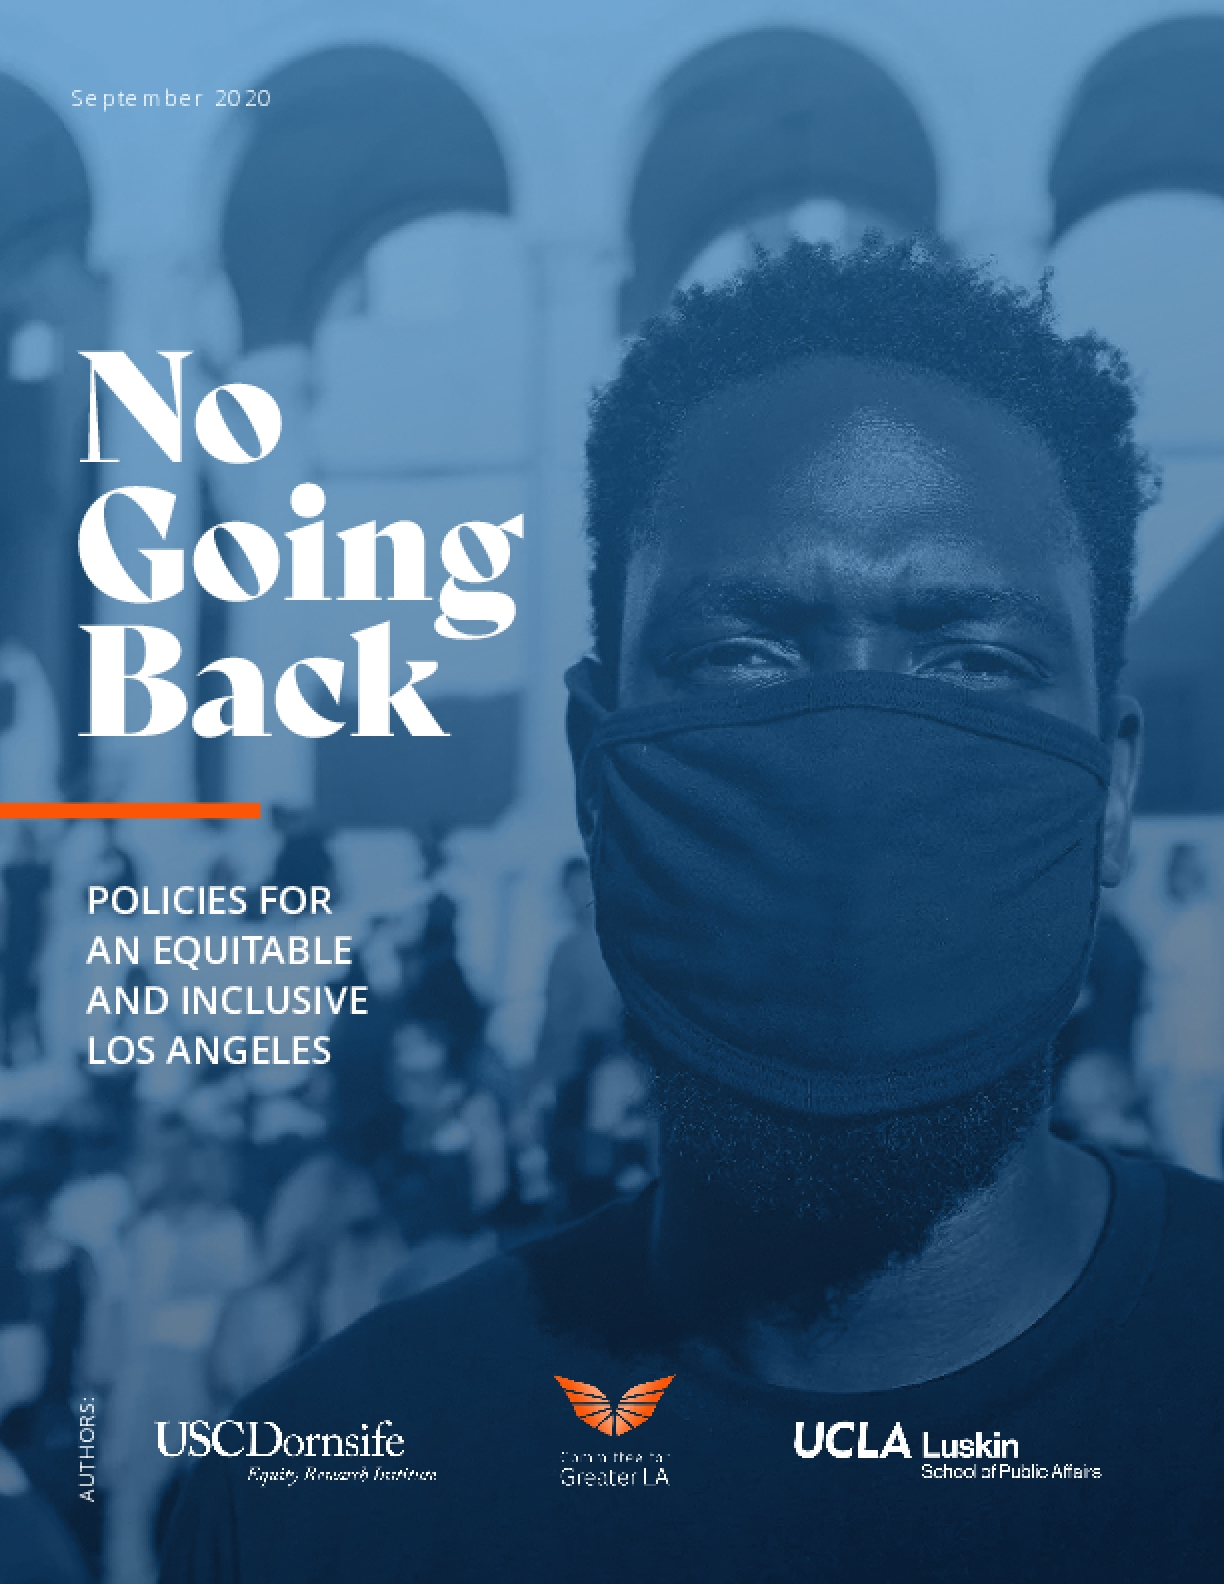 No Going Back: Policies for an Equitable and Inclusive Los Angeles